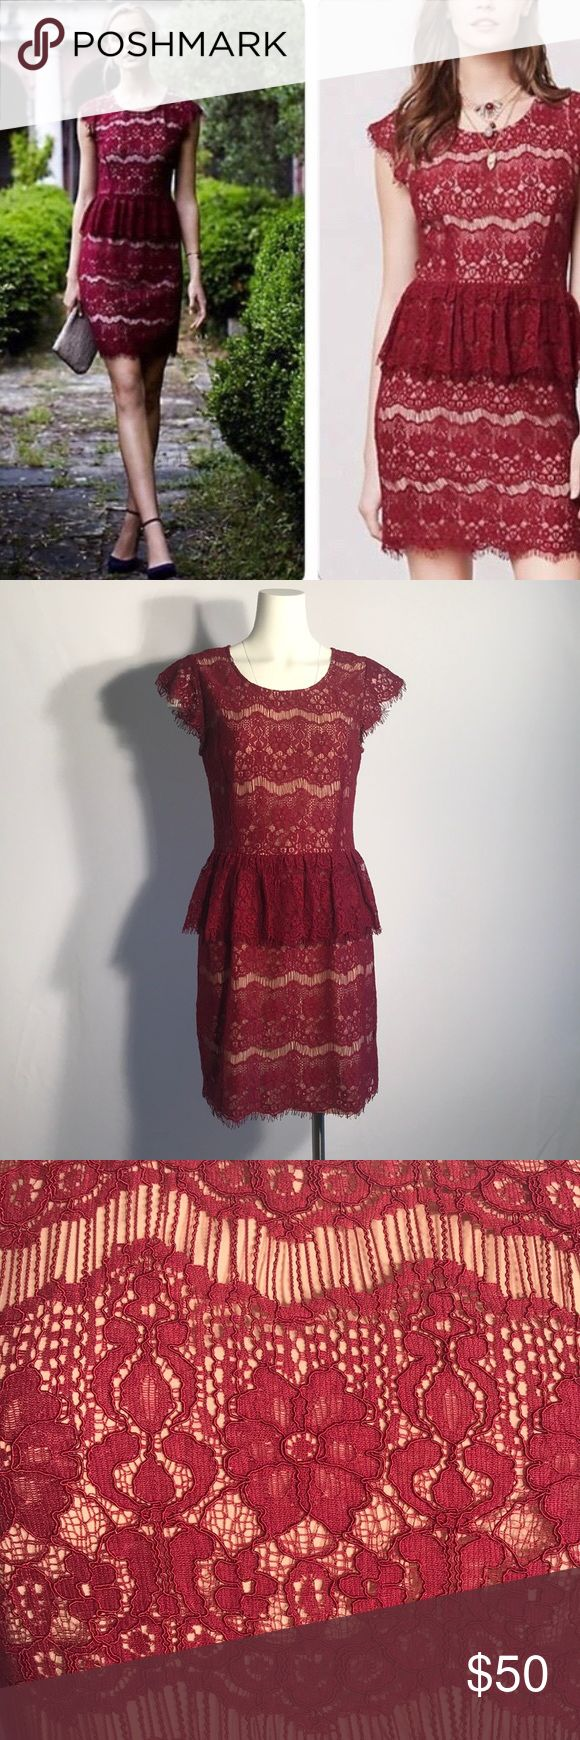 Anthropologie Maroon Red Peplum Dress Anthropologie Maeve Peplum Dress. Lace overlay on a beige lining. Last picture demonstrated best color of the dress. Approx 35 inch length.  Armpit to Armpit is approx 17.5 inches.  Waist (right above Peplum) approx 15 inches. Zipper down the back of the dress. Anthropologie Dresses